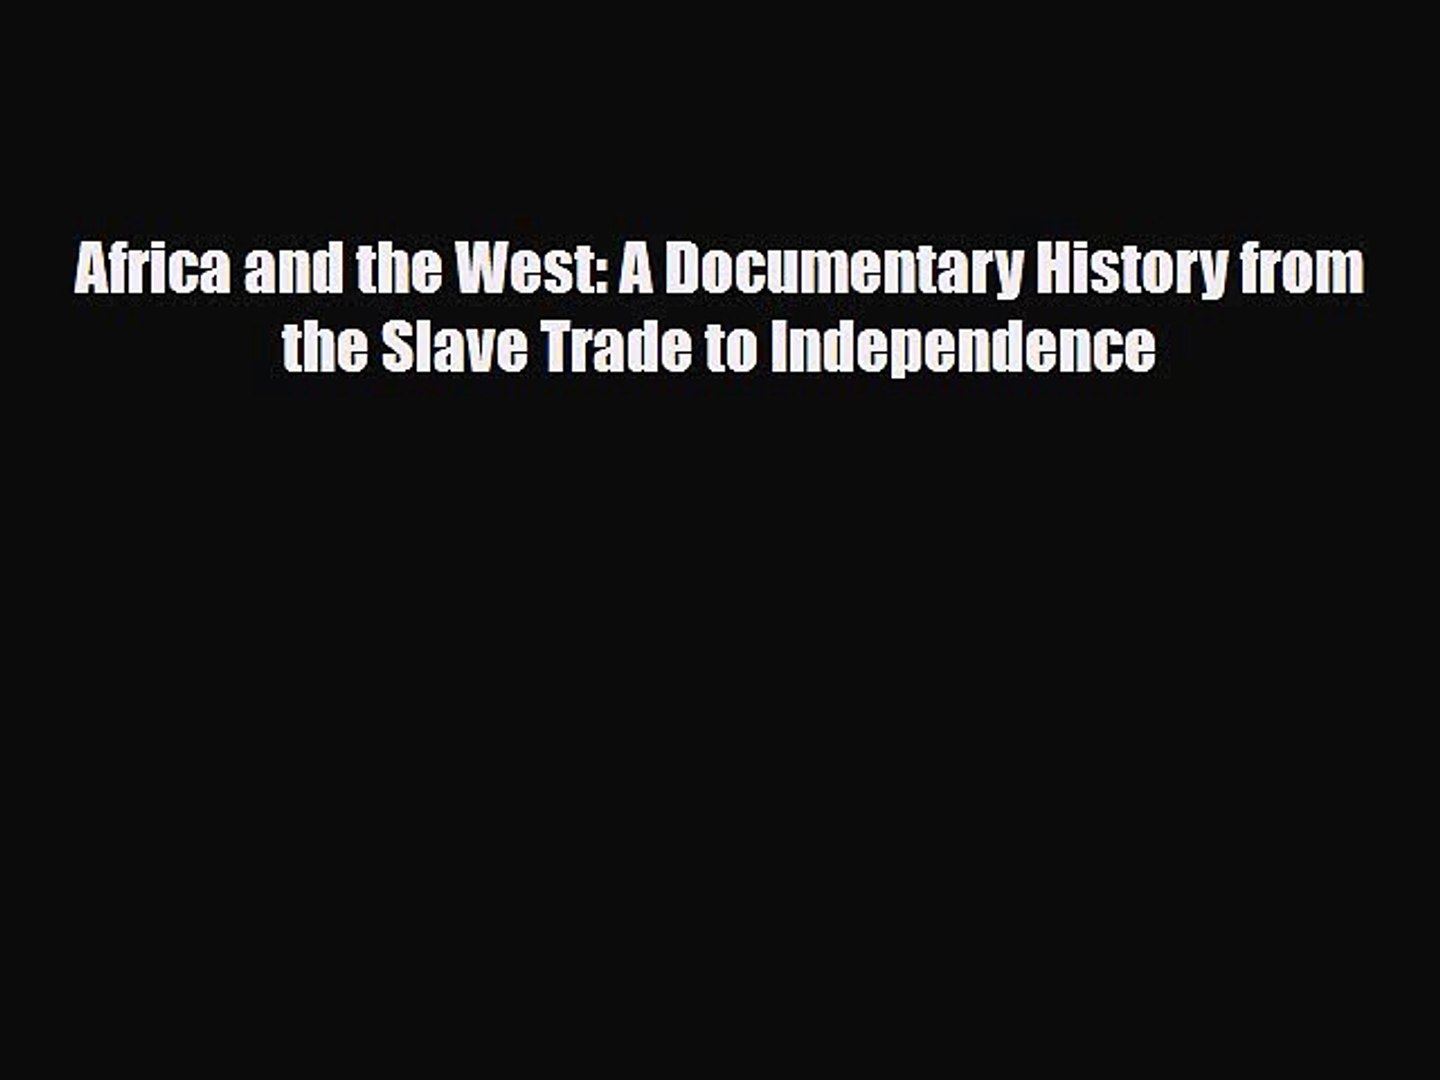 [PDF] Africa and the West: A Documentary History from the Slave Trade to Independence Download